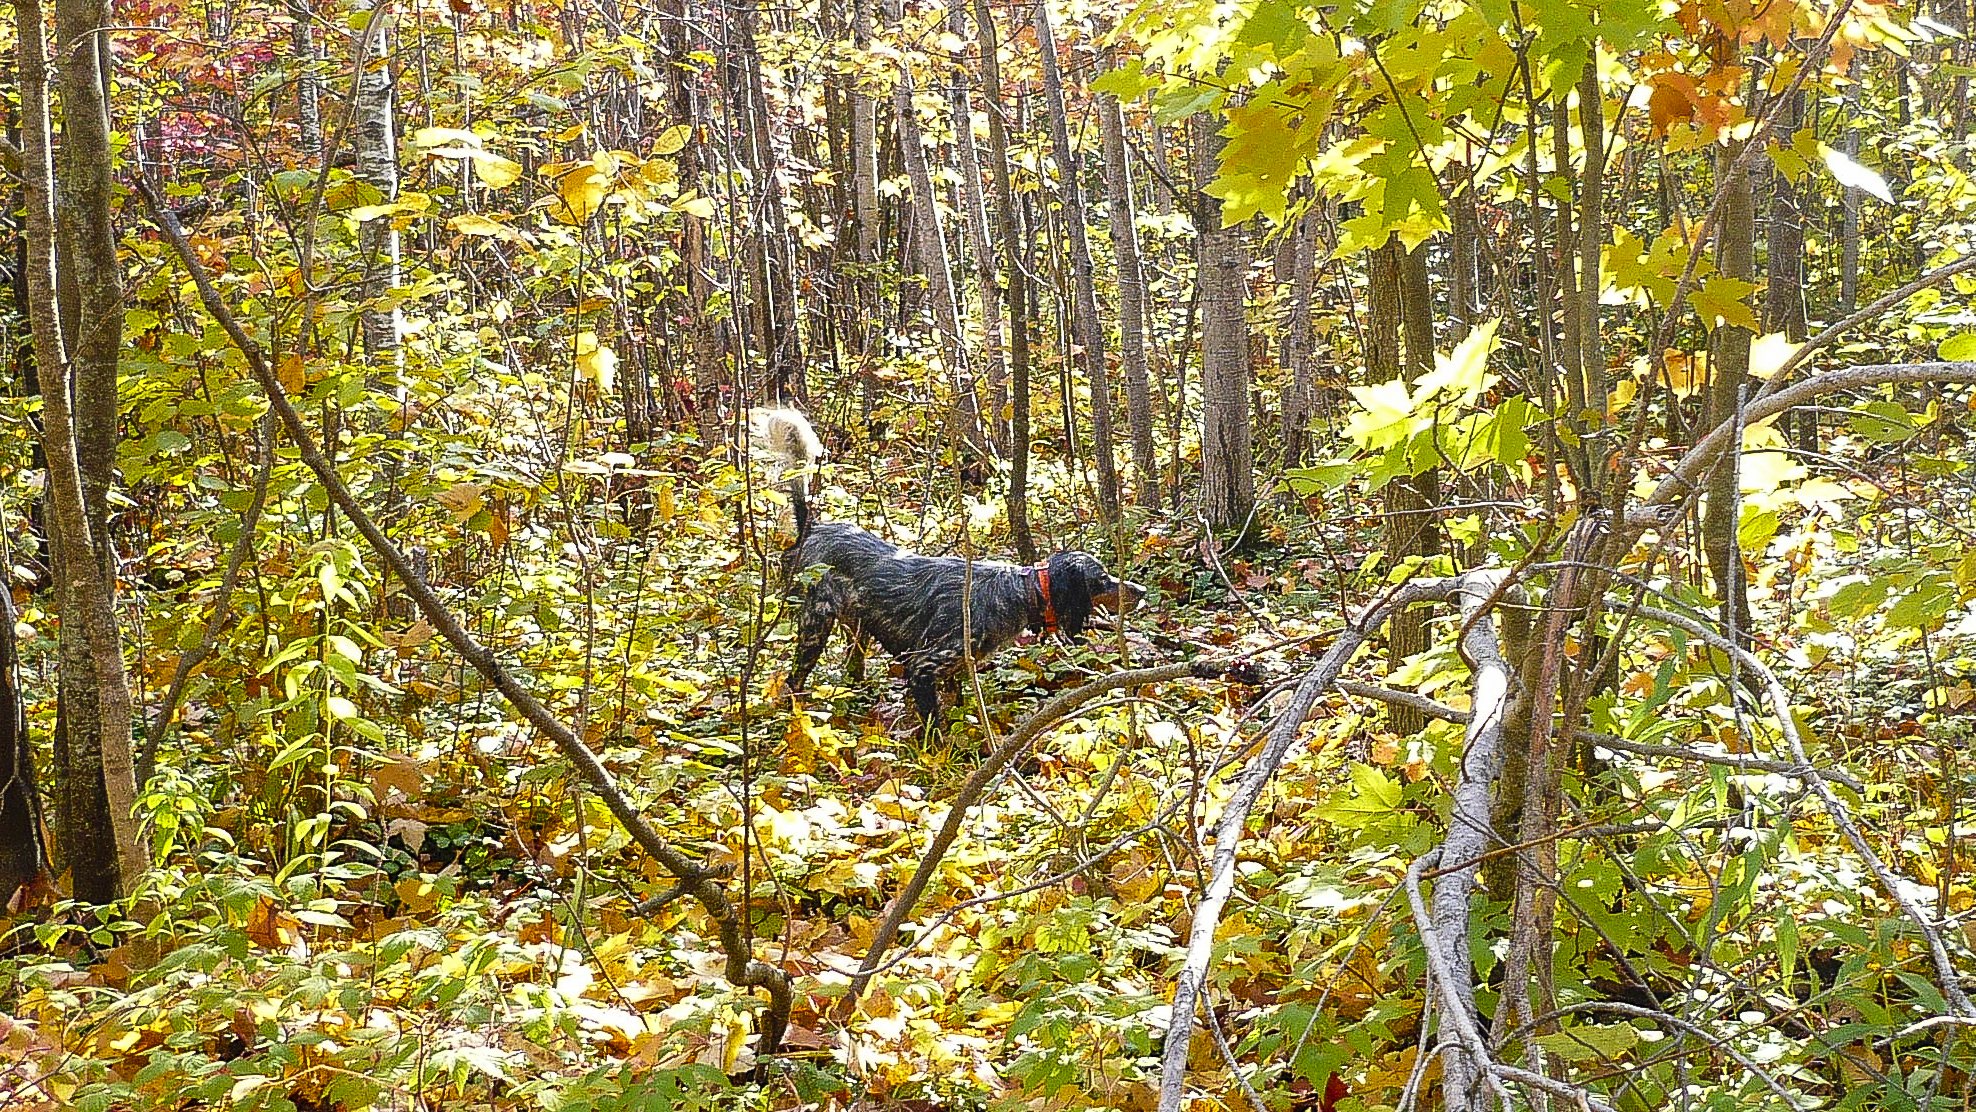 Laurel Mt's Llewellin Setter, Luke pointing a Ruffed Grouse in the Northwoods. September 2008